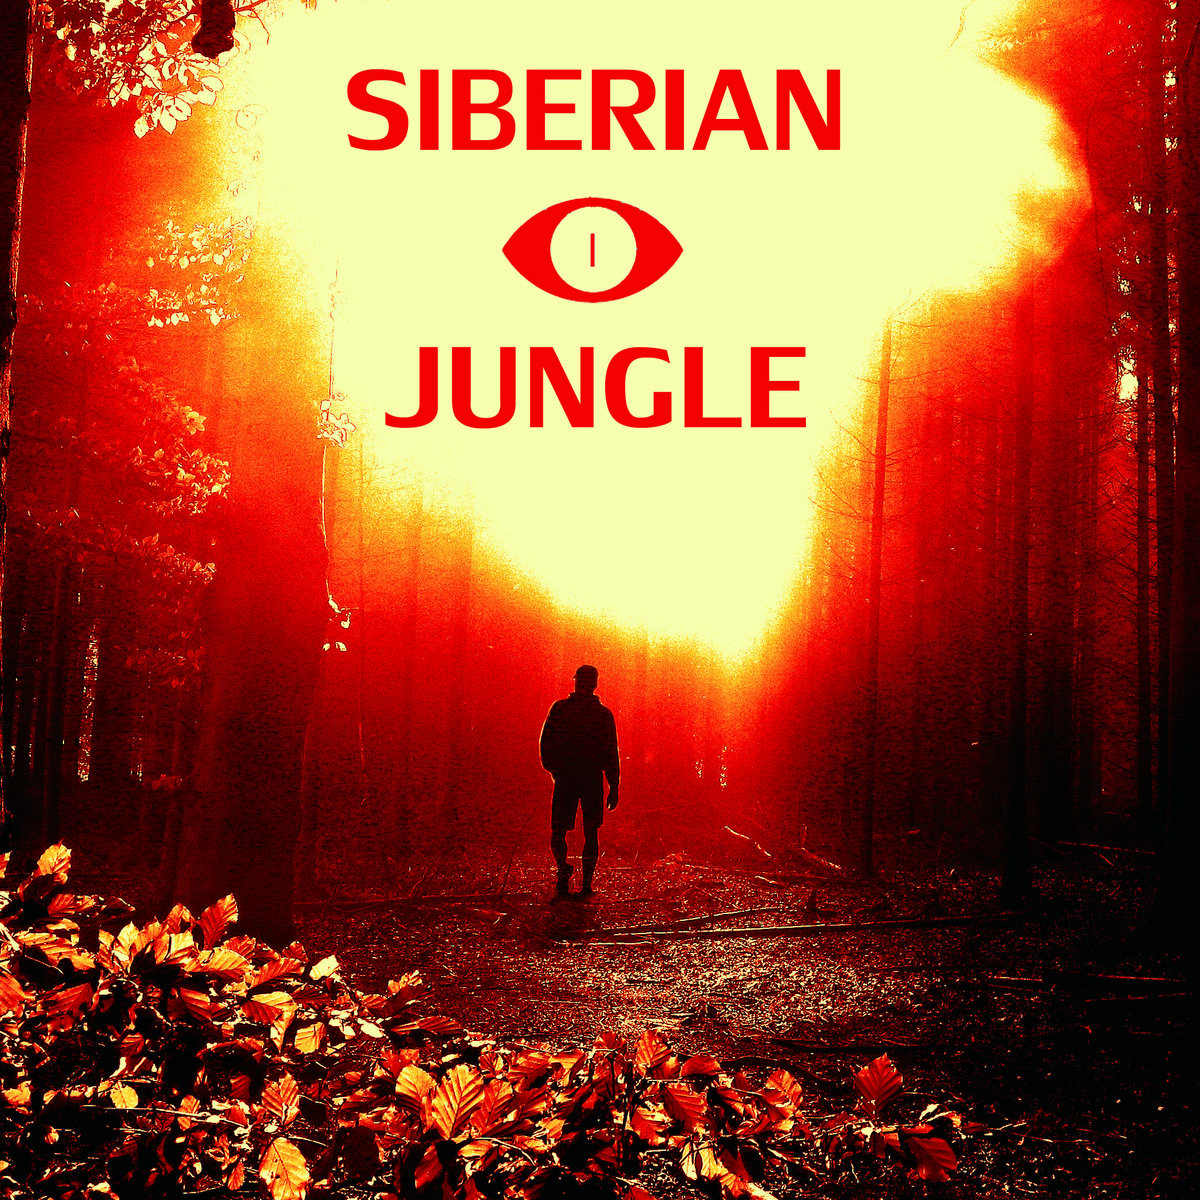 Drudex feat. NEOSIDE - The Big Distance @ 'Siberian Jungle - Volume 1' album (atmospheric drum'n'bass, electronic)